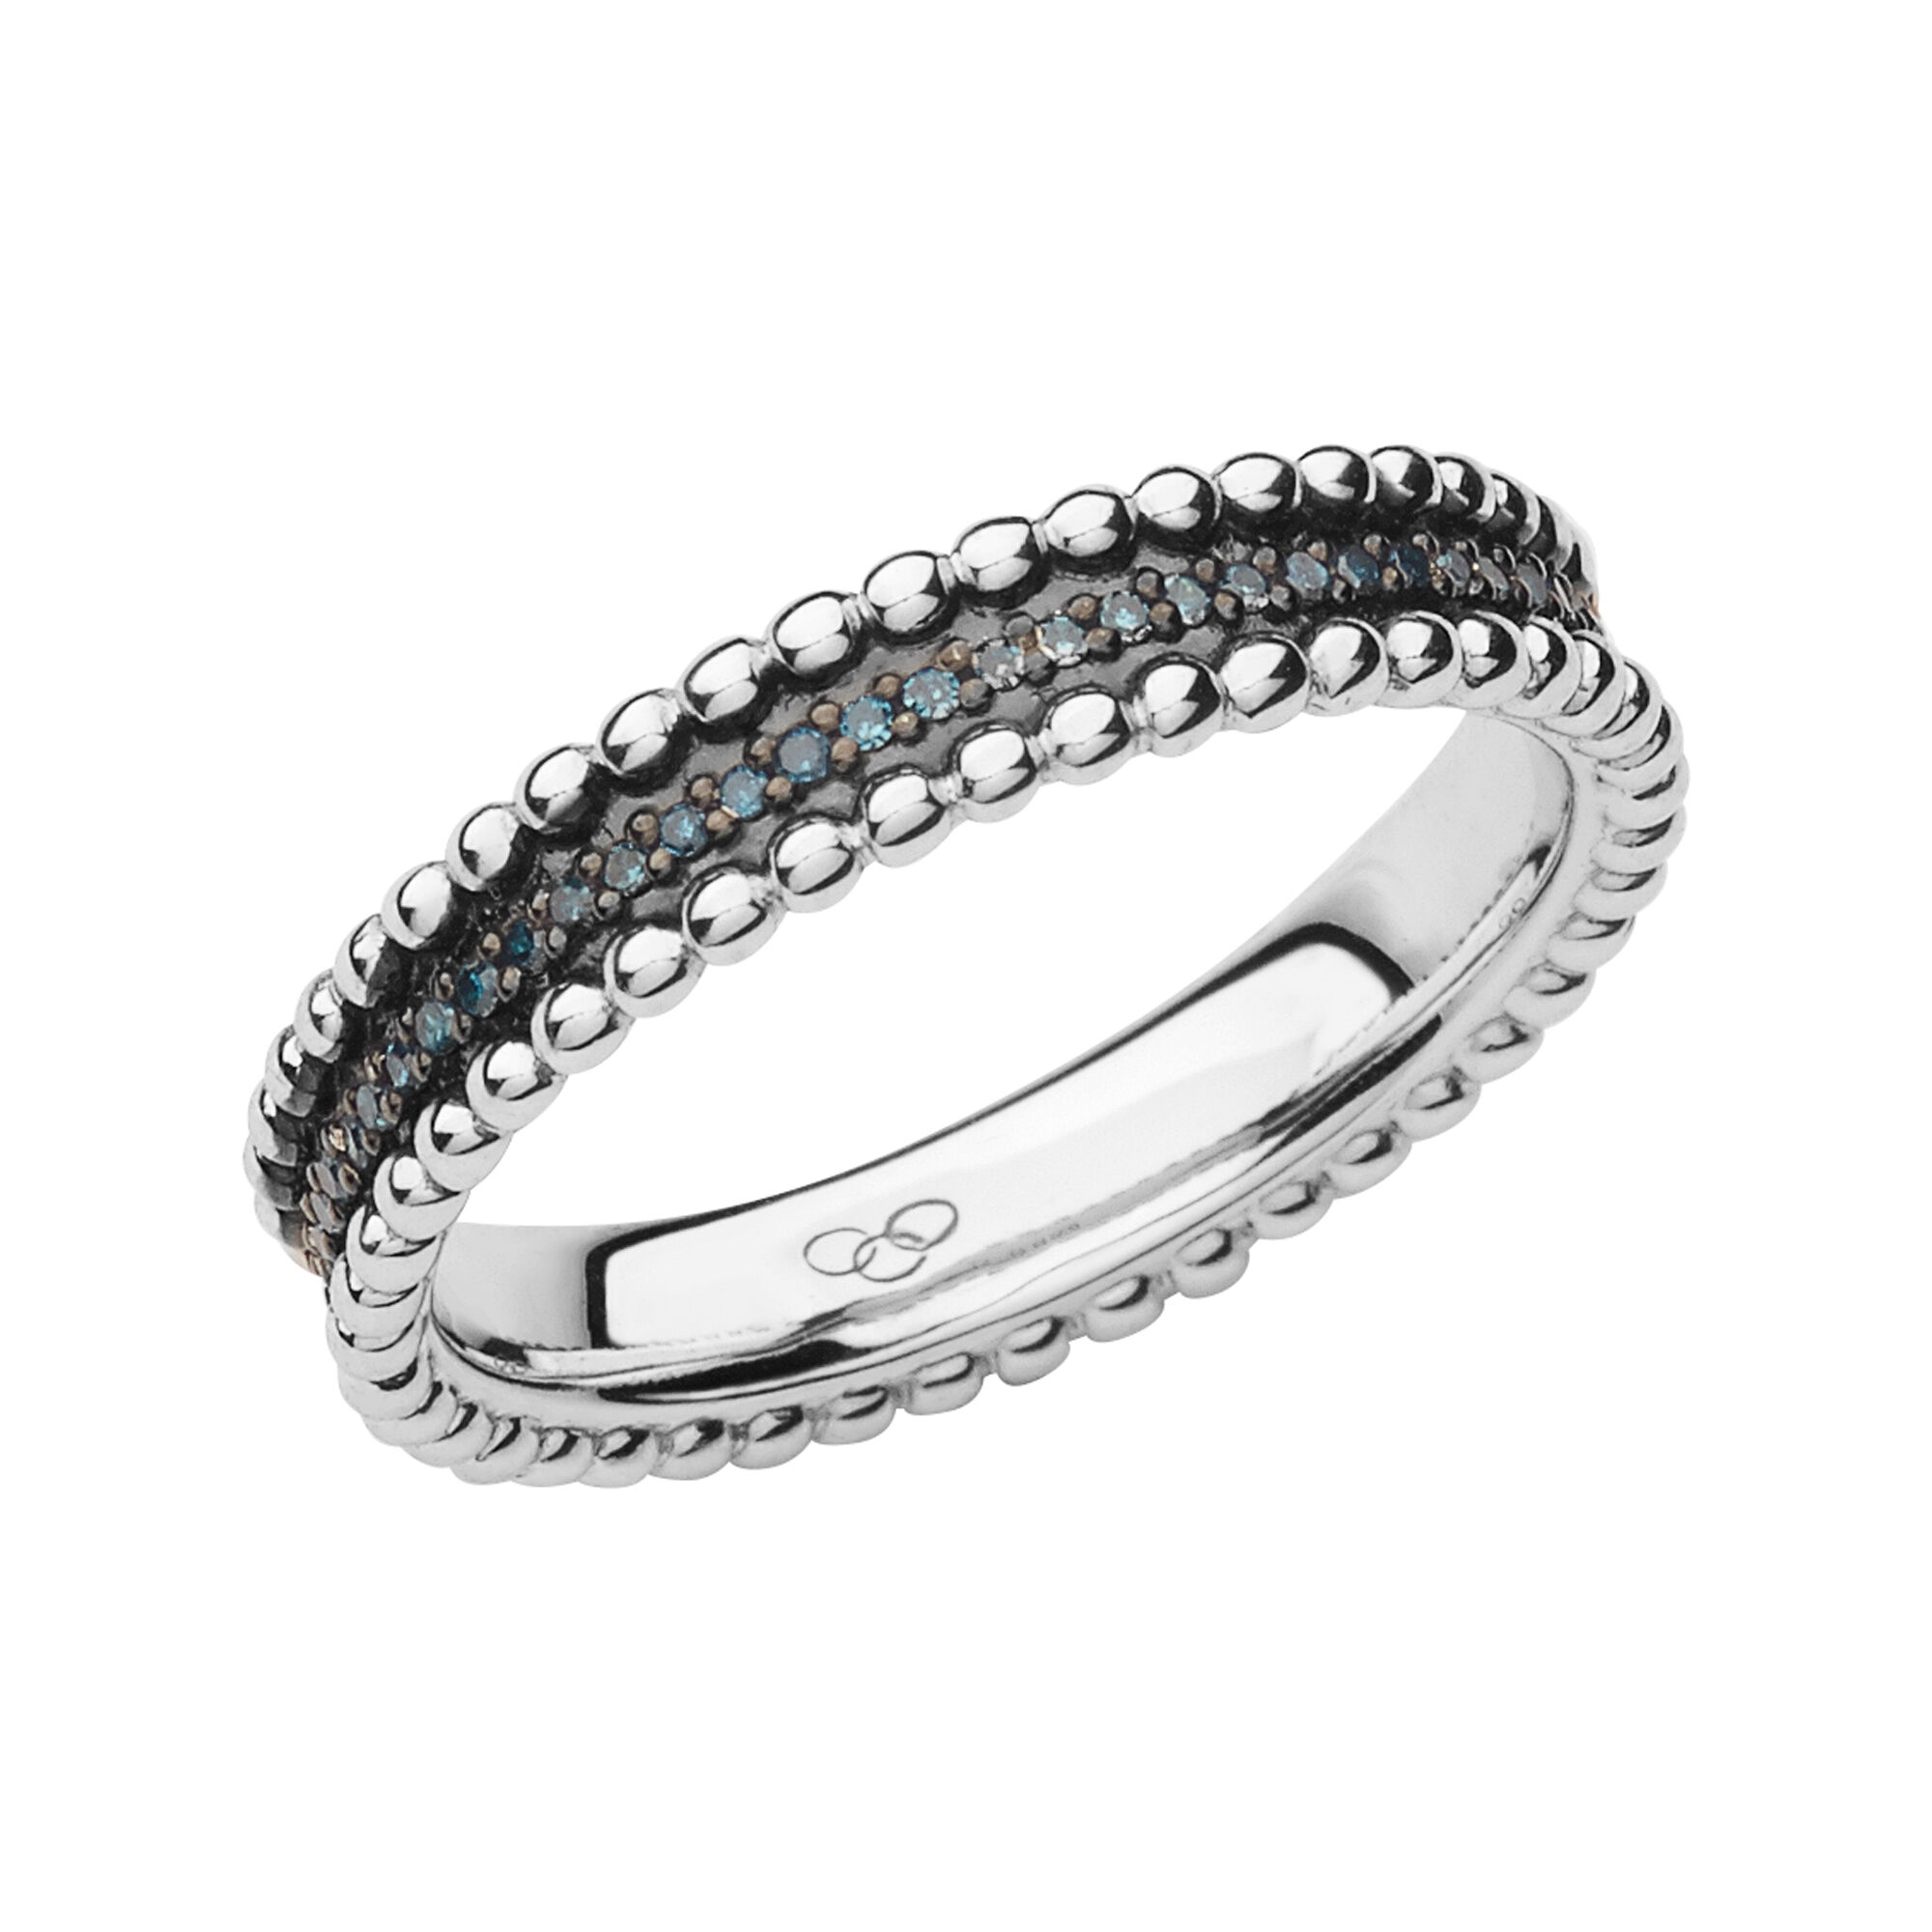 engagement wedding diamond bands mens id in tiffany a classic ed fmt hei wid mm fit constrain ring platinum with band m